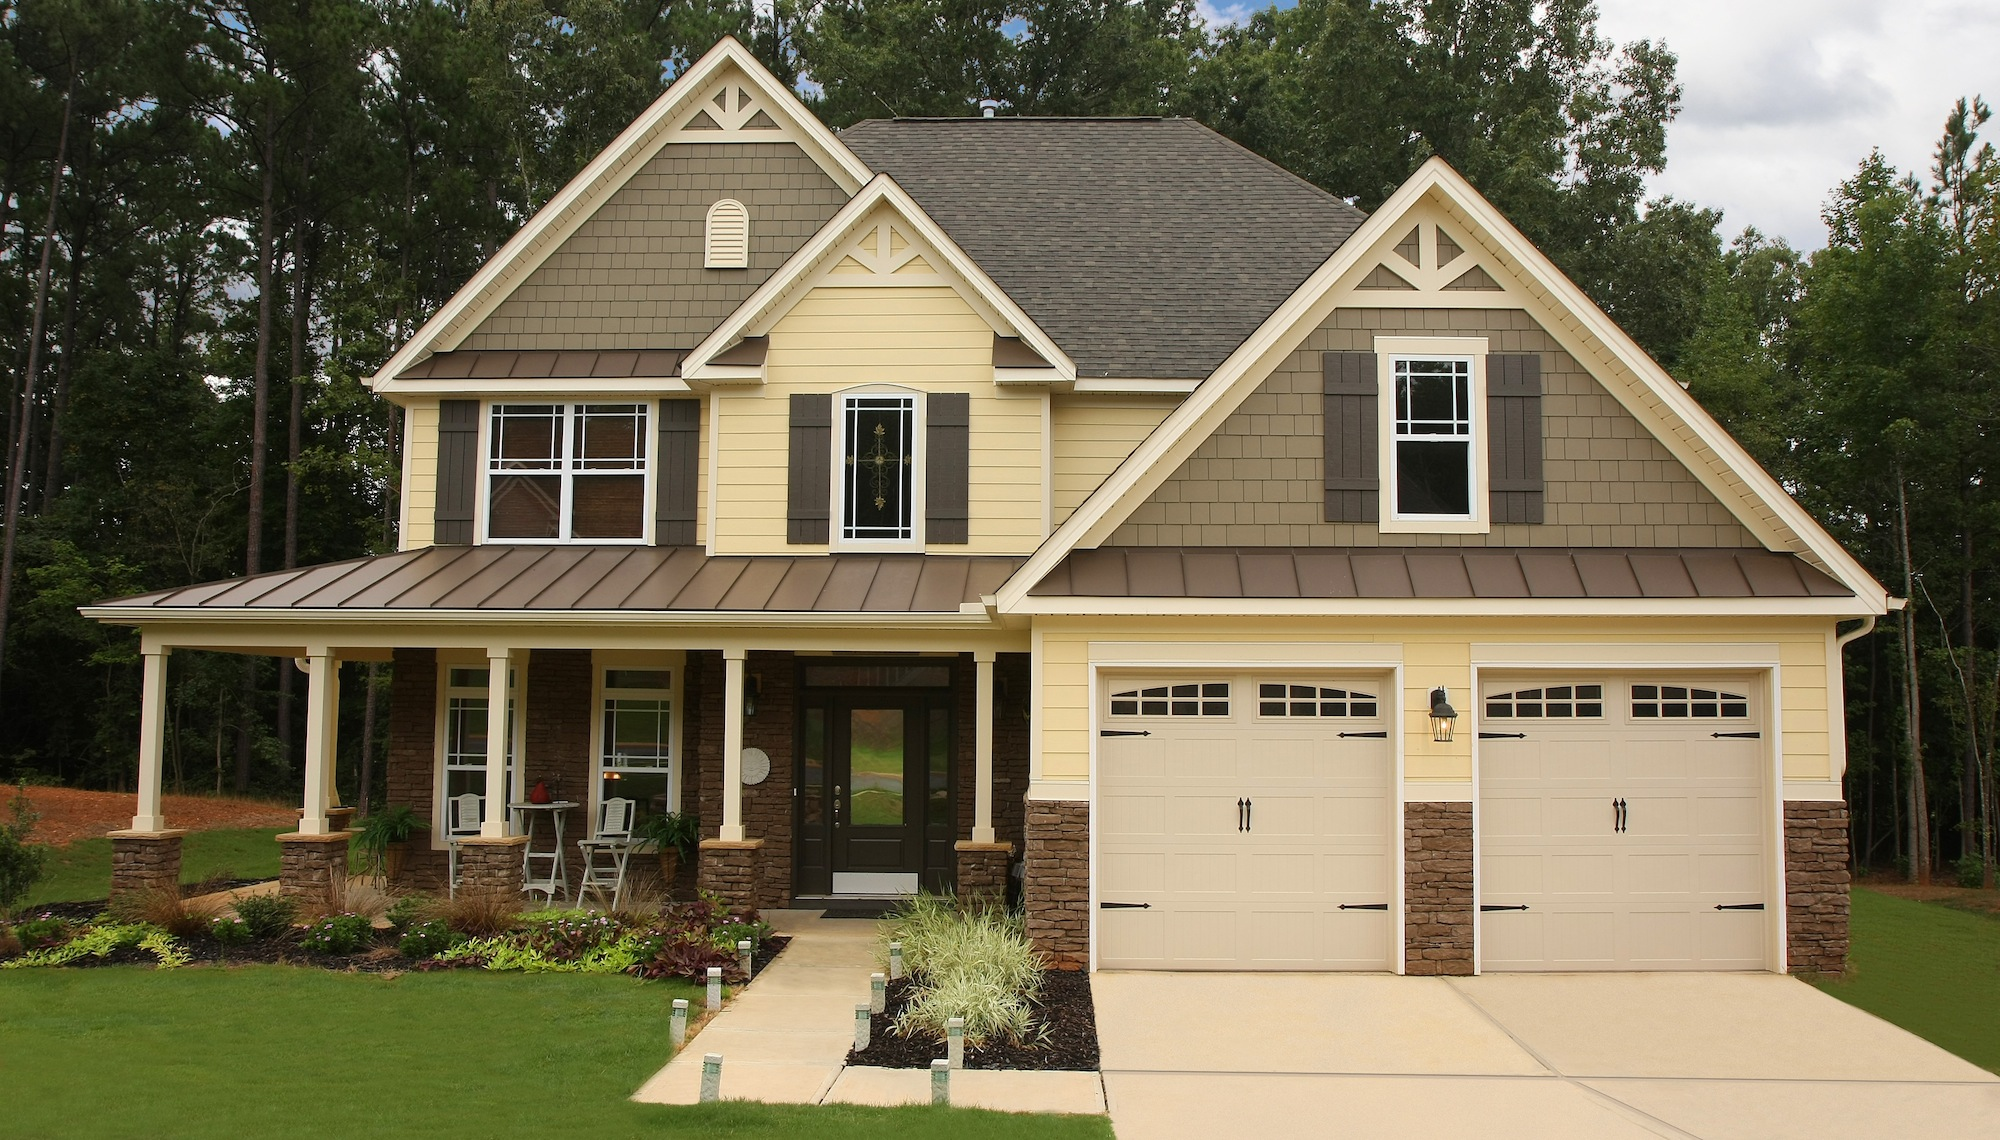 7 ideas to make neutral siding more exciting for your hoa for Siding color